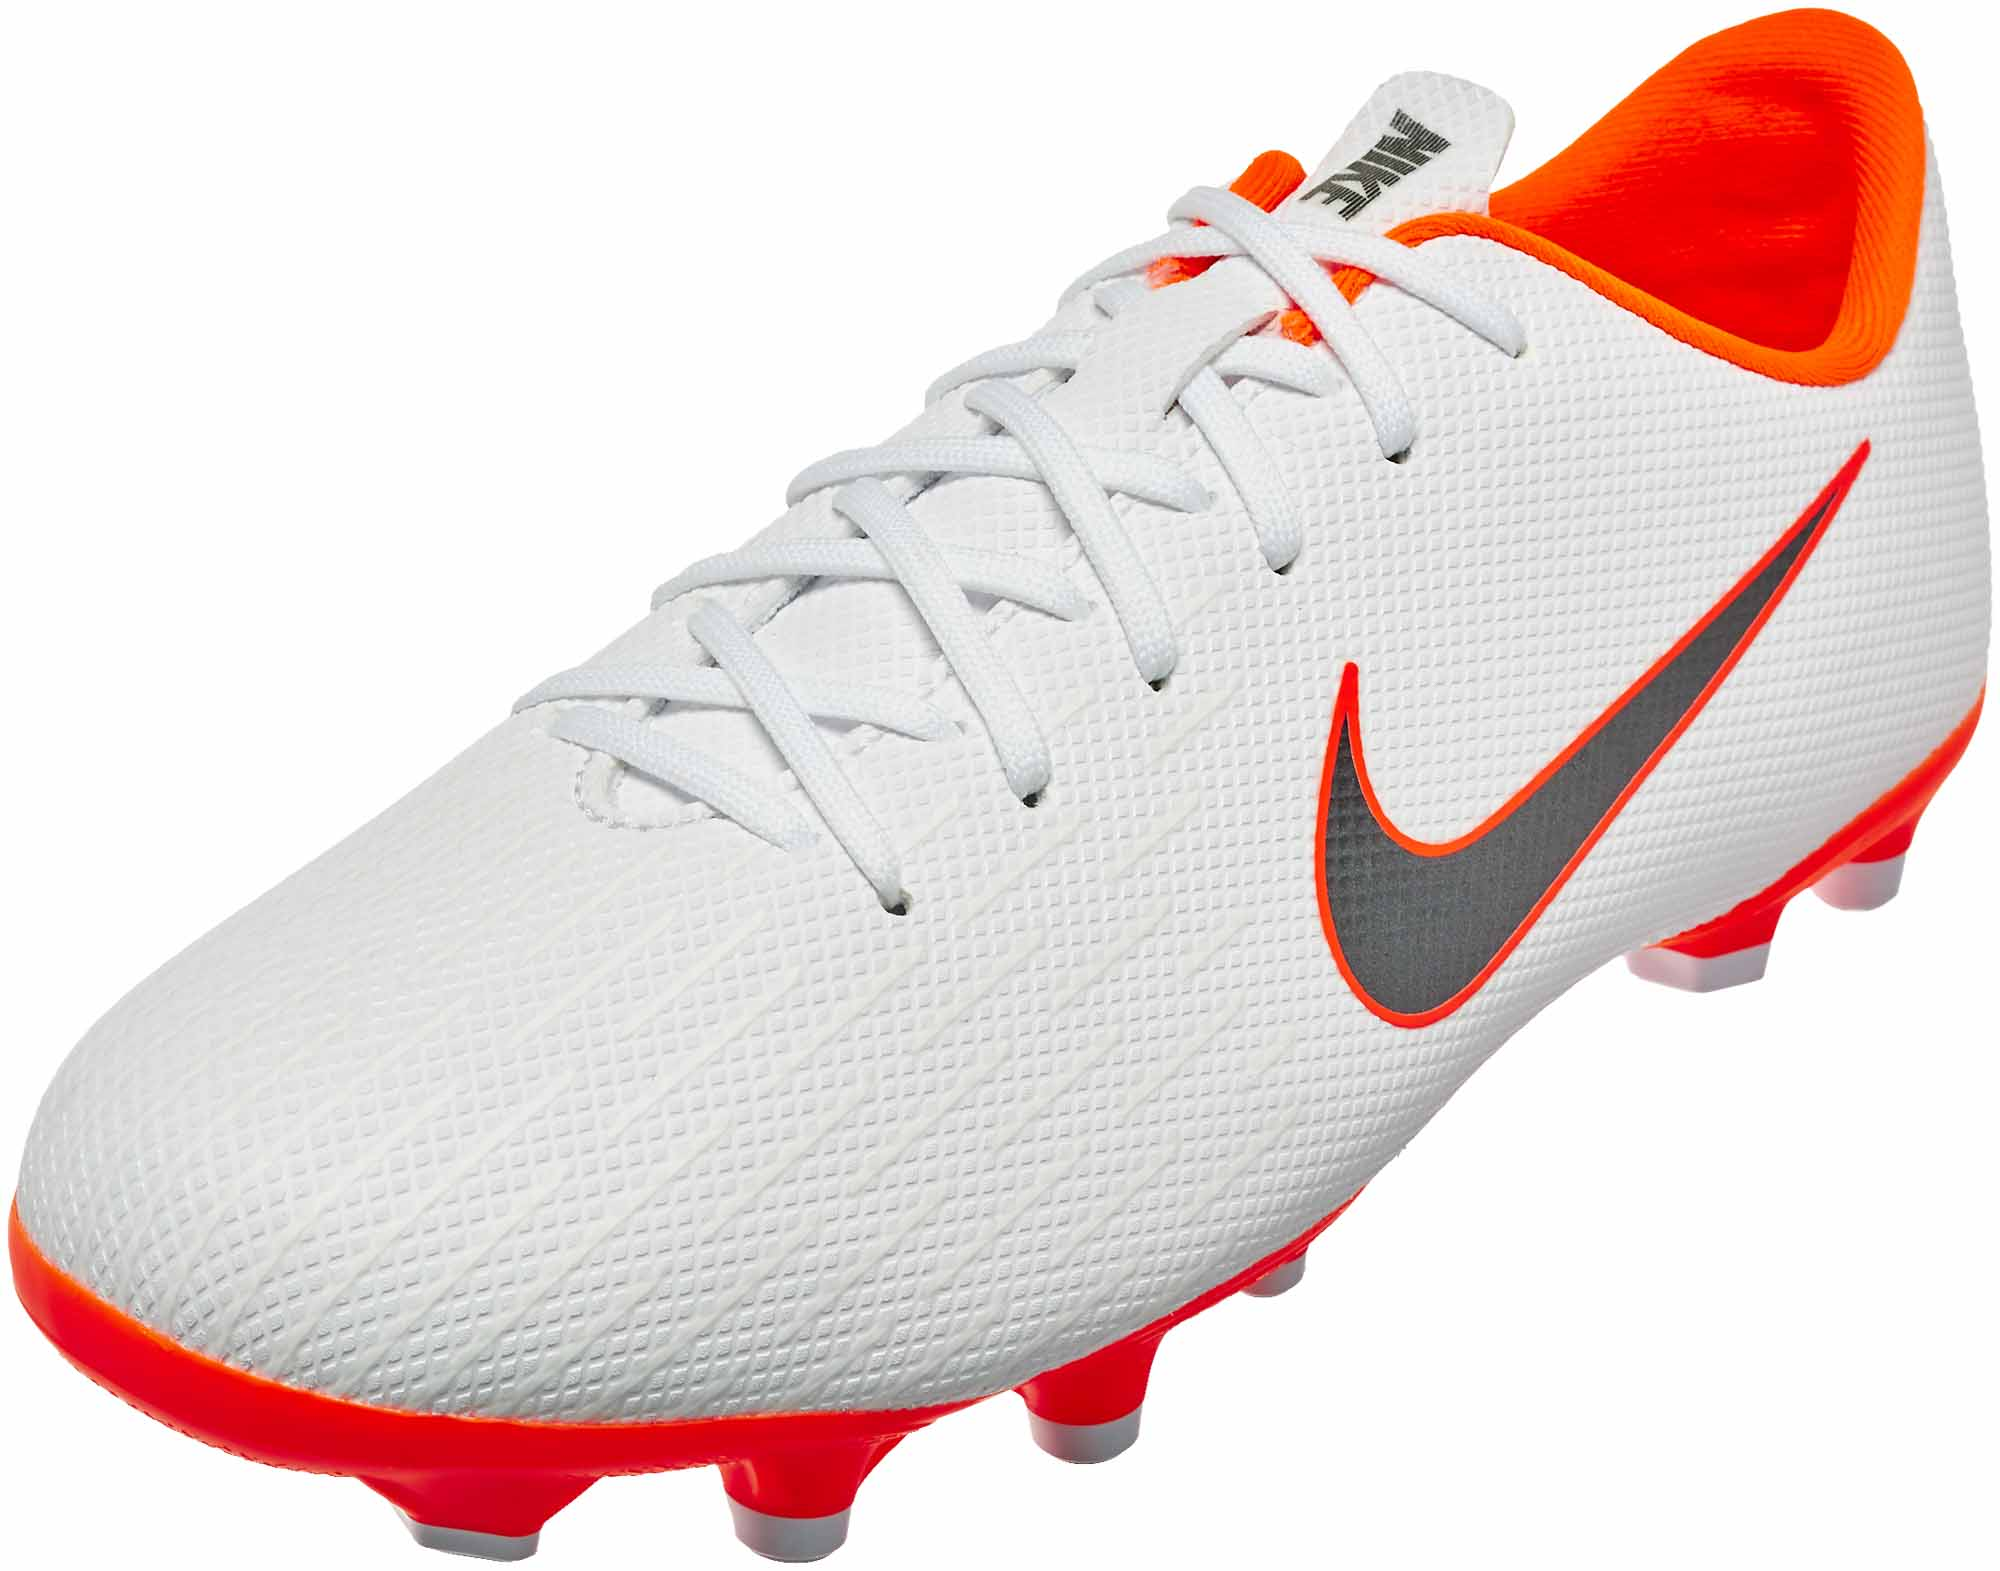 innovative design 1733d 84fd5 Nike Mercurial Vapor 12 Academy MG - Youth - White/Metallic Cool Grey/Total  Orange